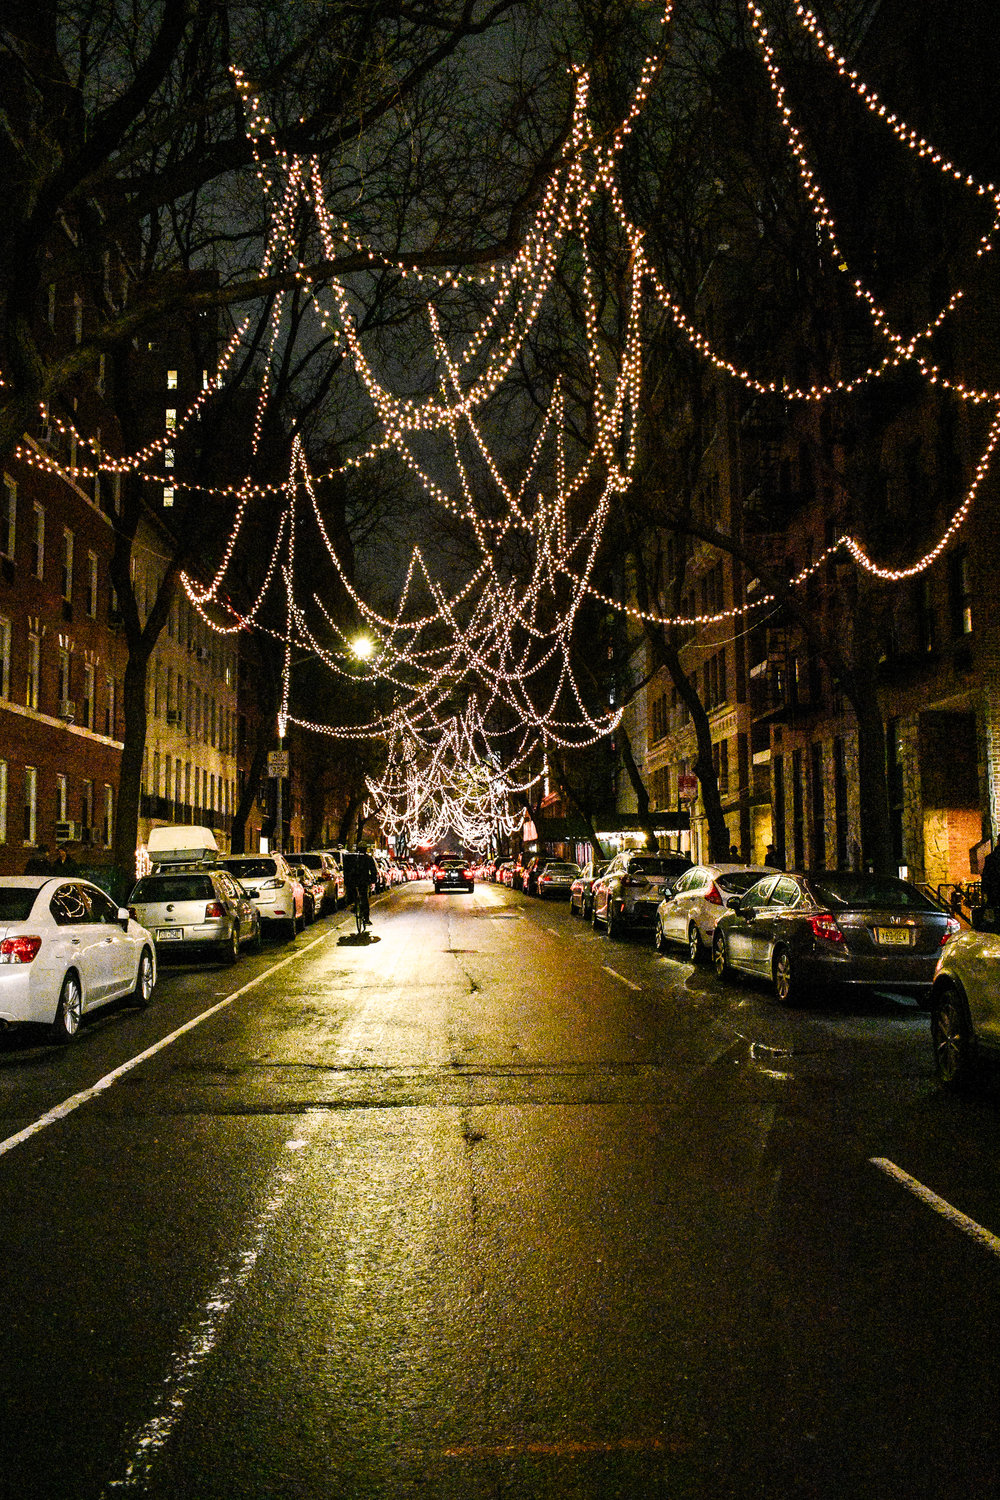 Hell's Kitchen New York City Christmas lights